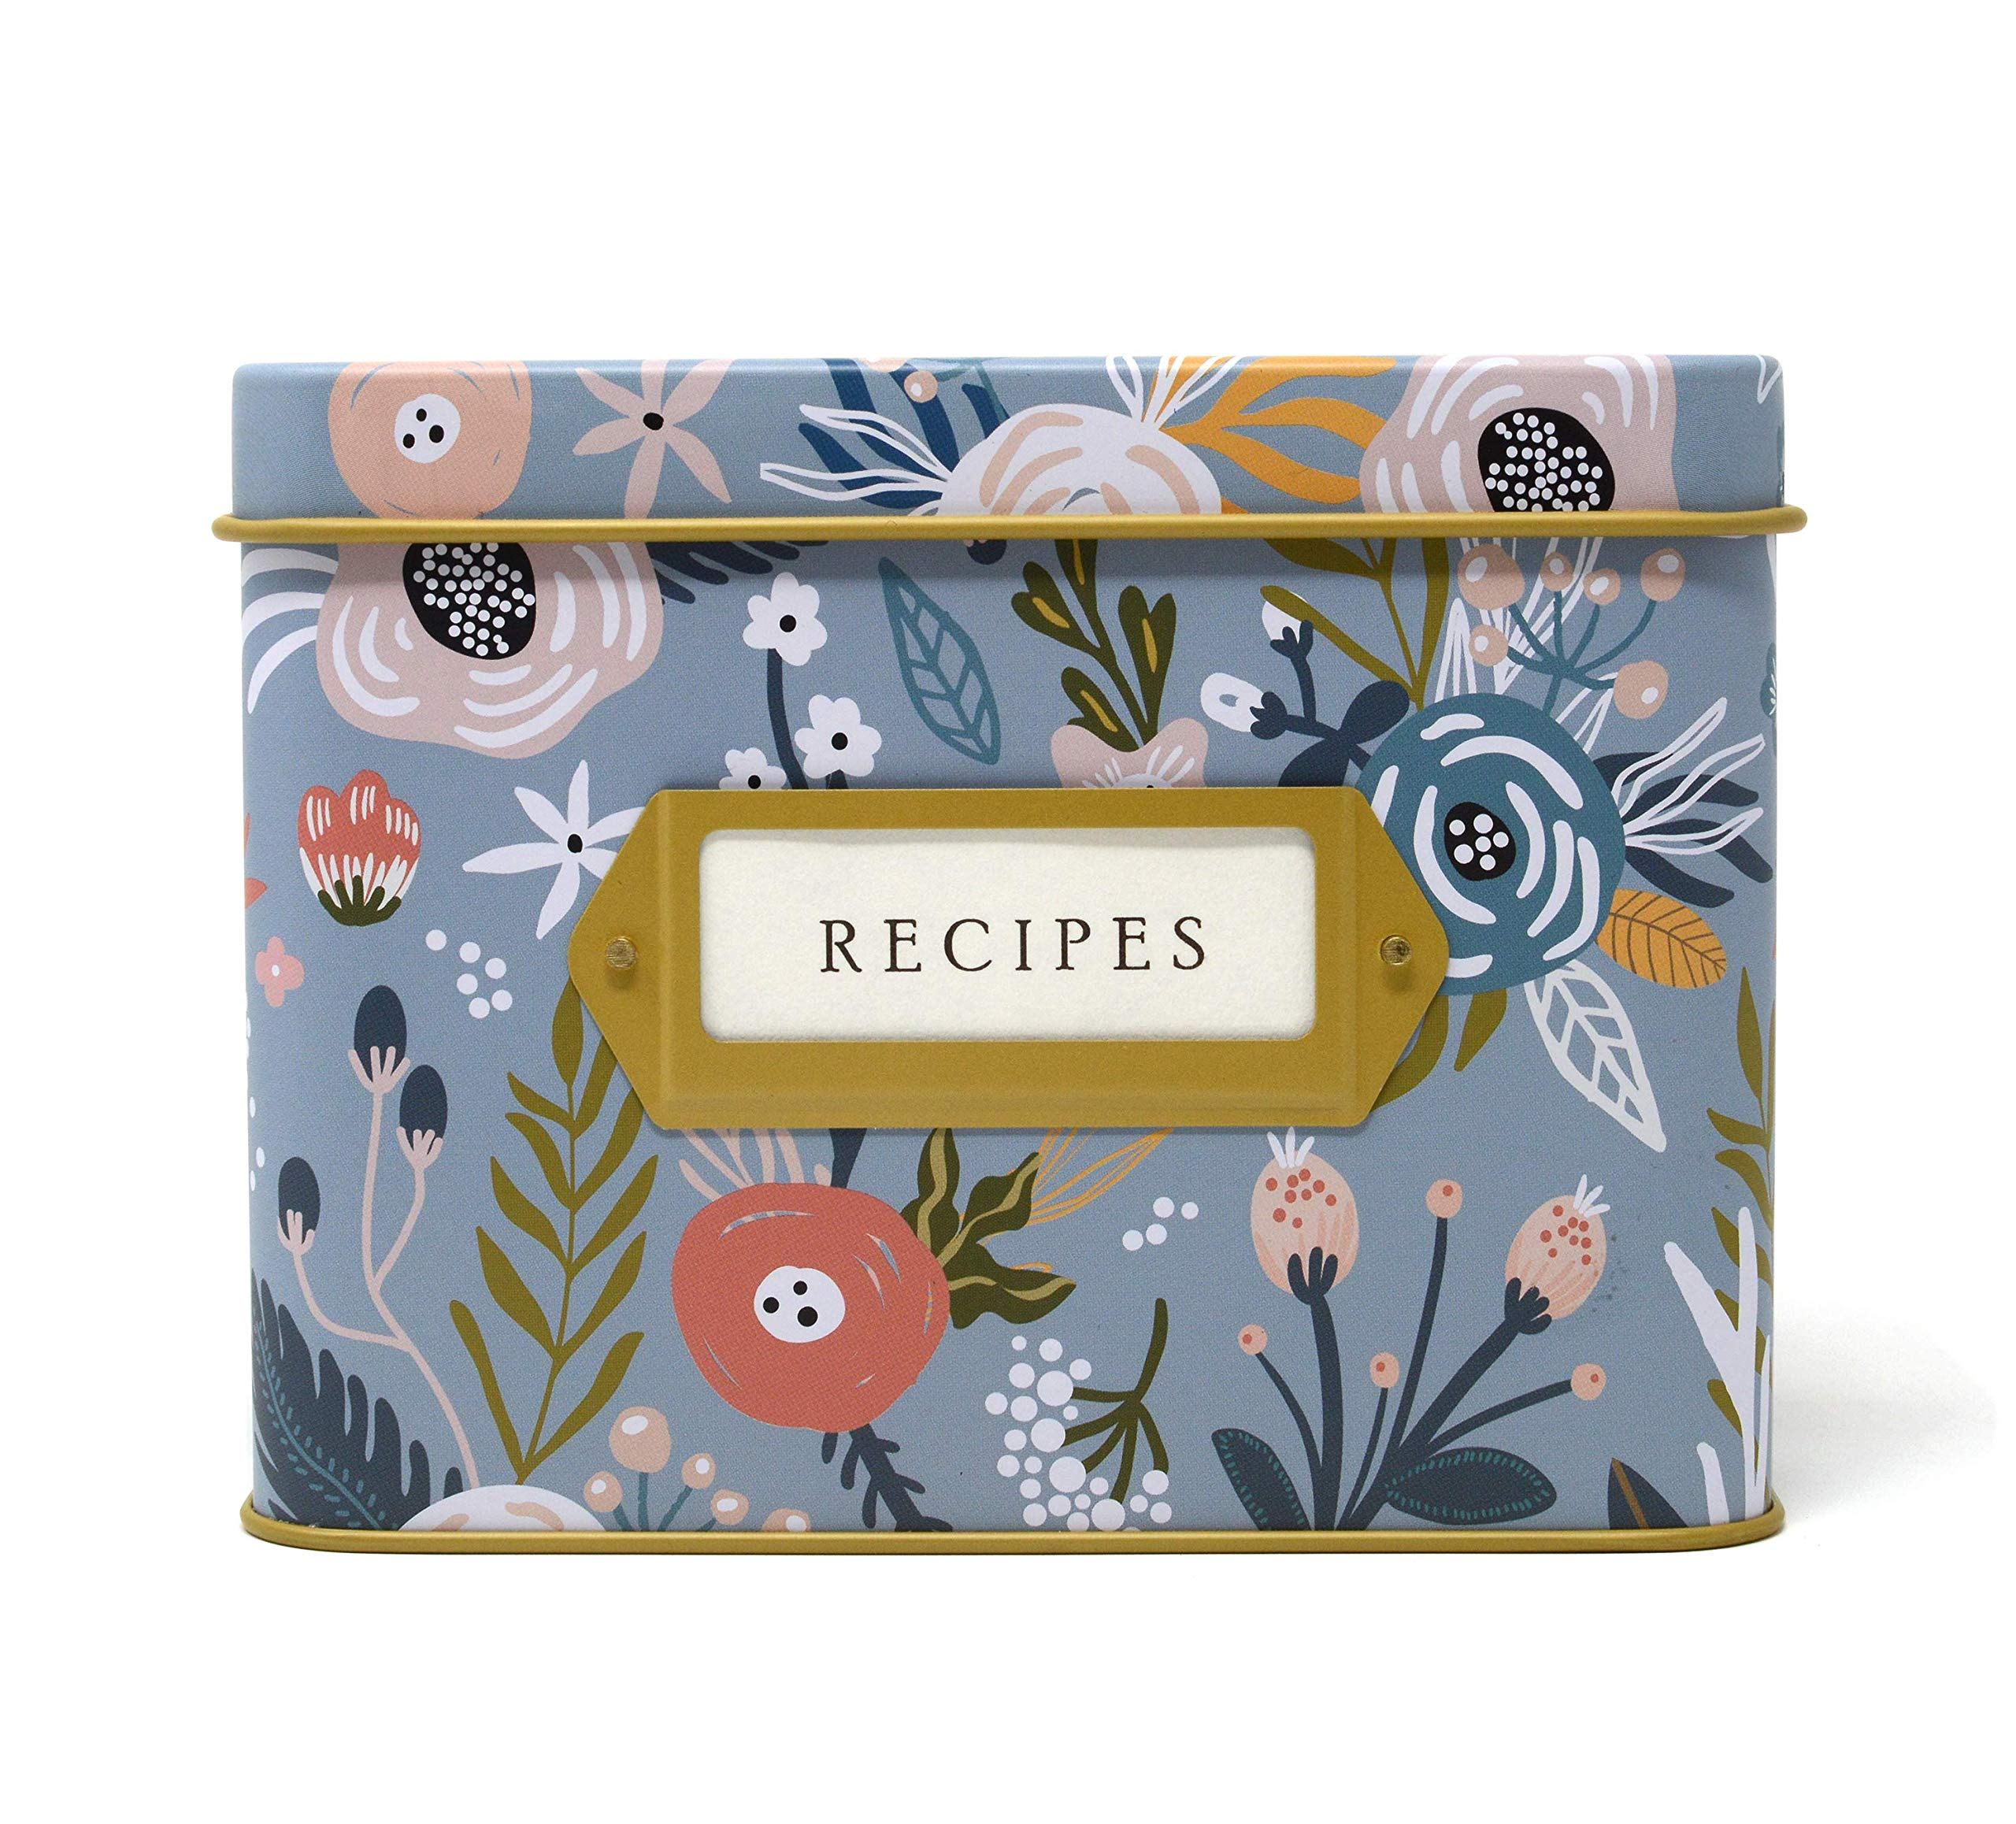 Jot & Mark Decorative Tin for Recipe Cards | Holds Hundreds of 4x6 Cards (Garden Floral) by Jot & Mark